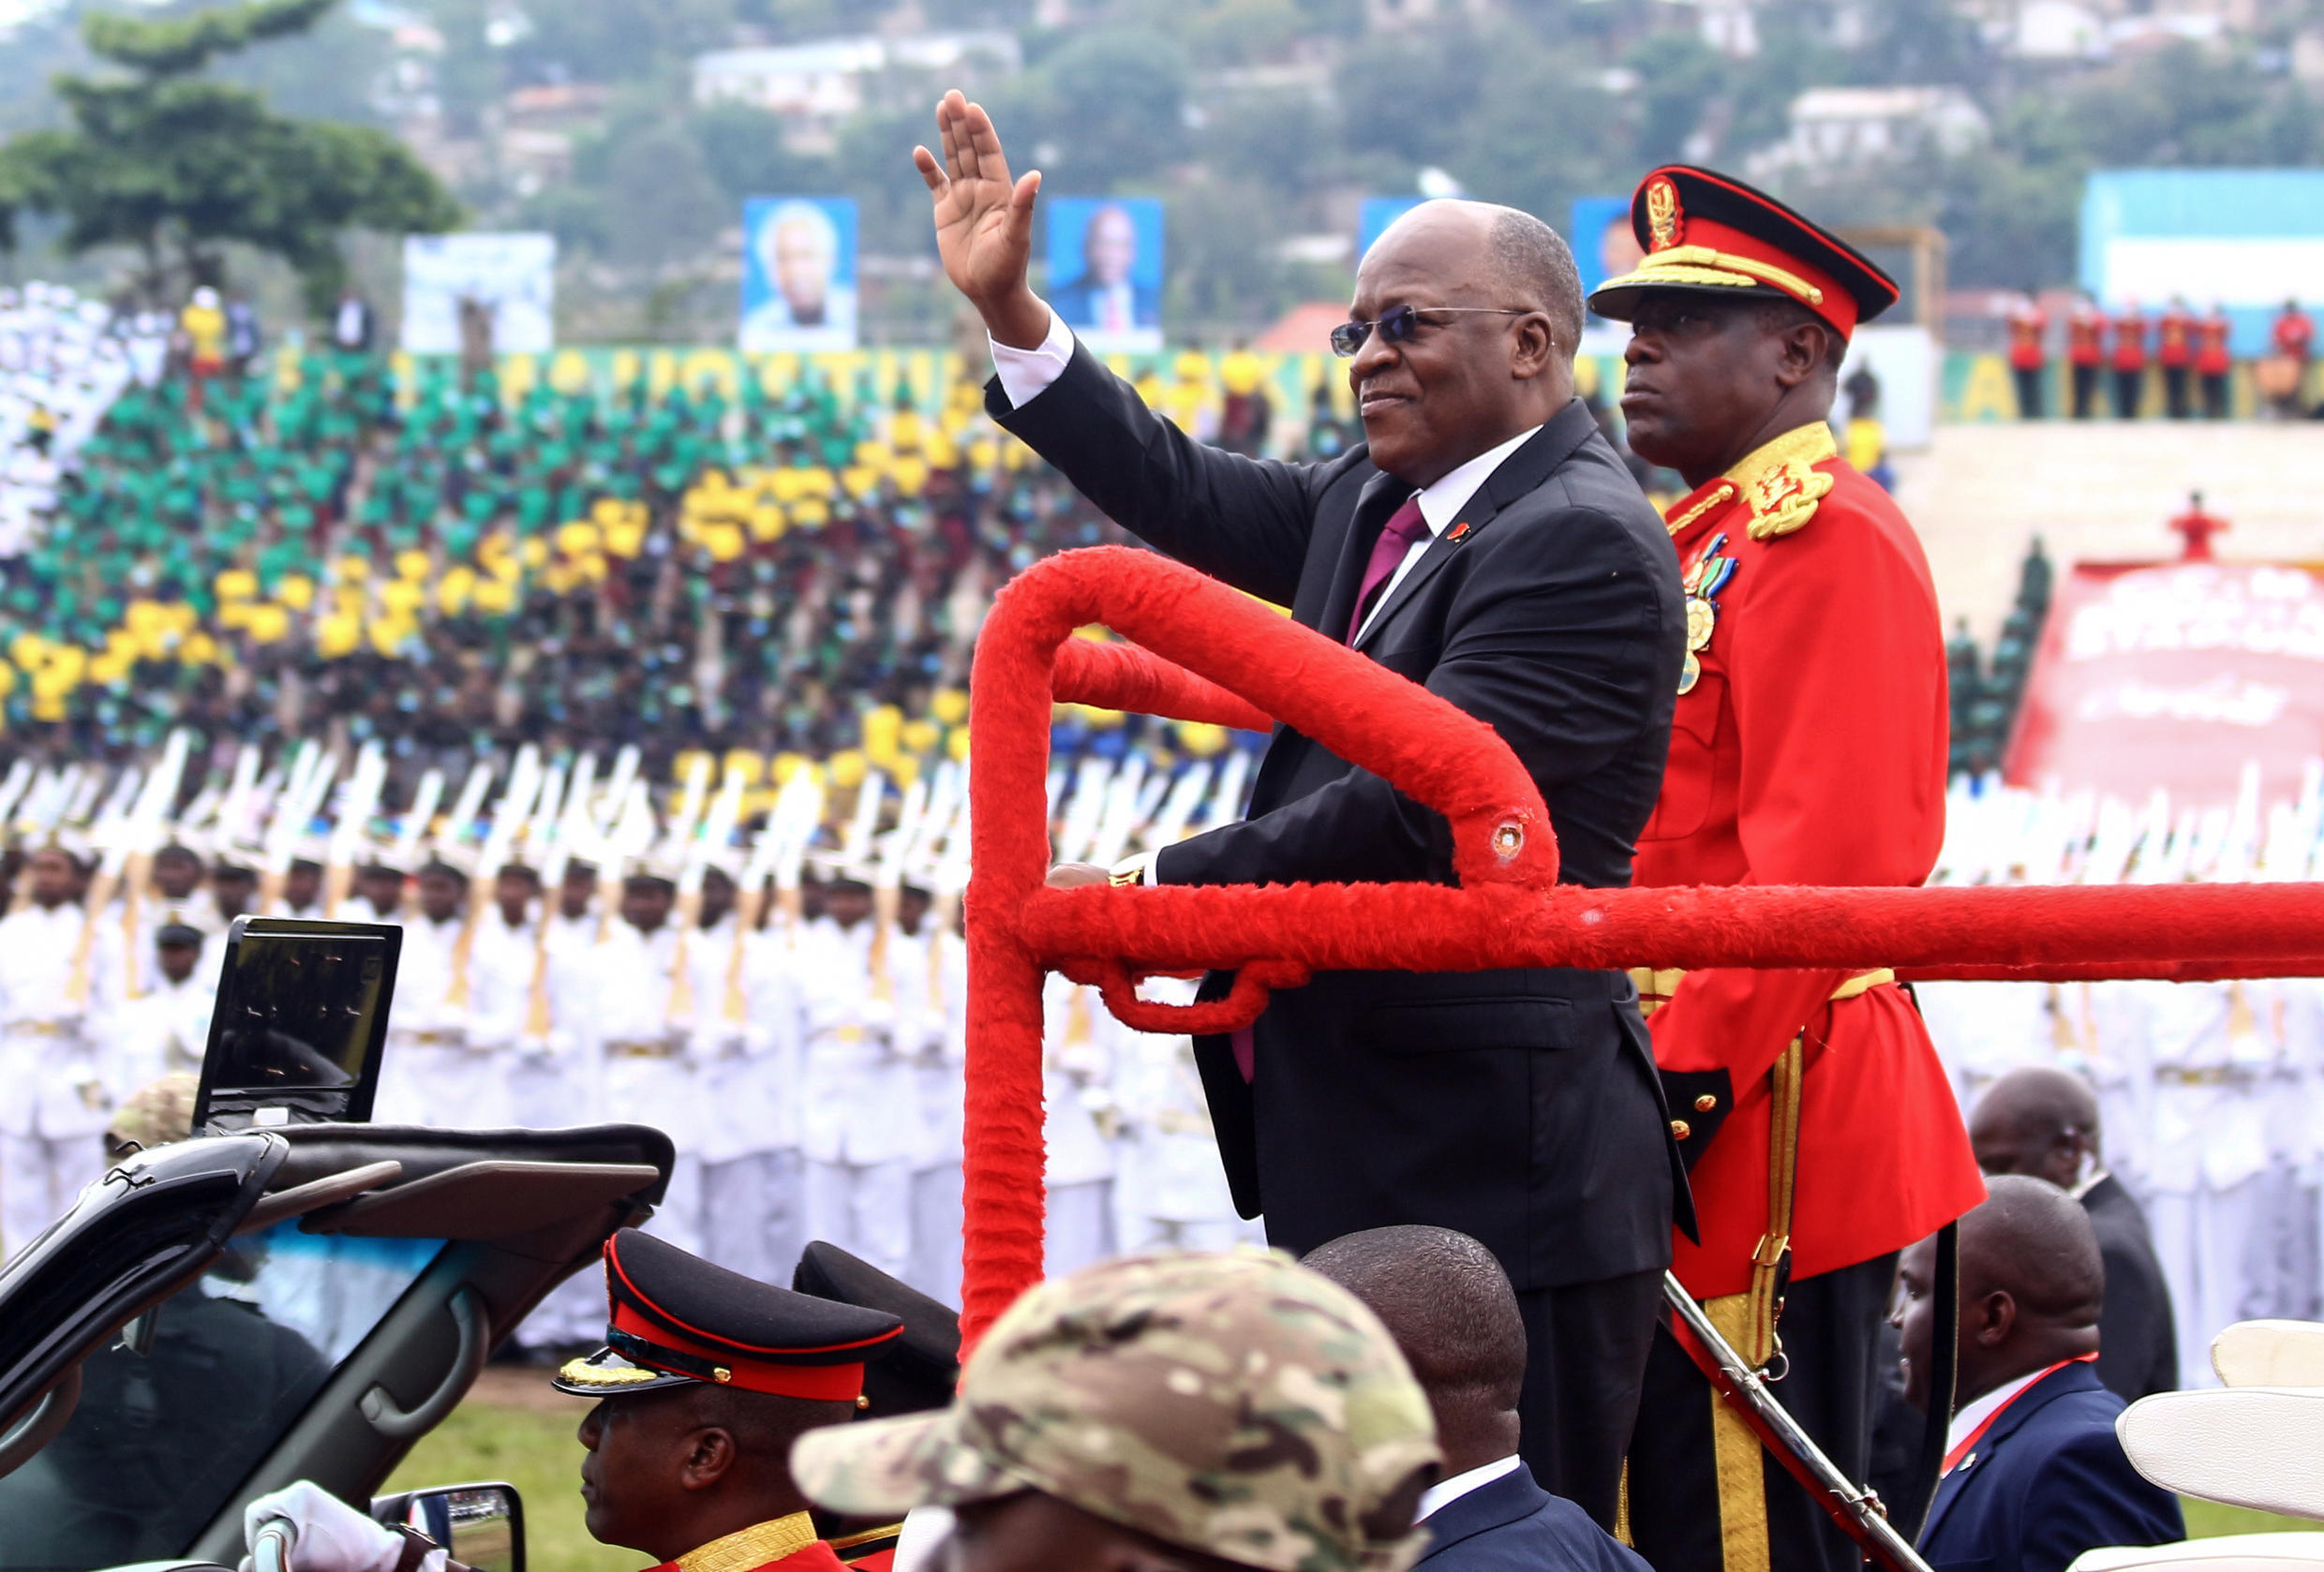 President John Magufuli, centre, at ceremonies last December to mark Tanzania's 58th anniversary of independence